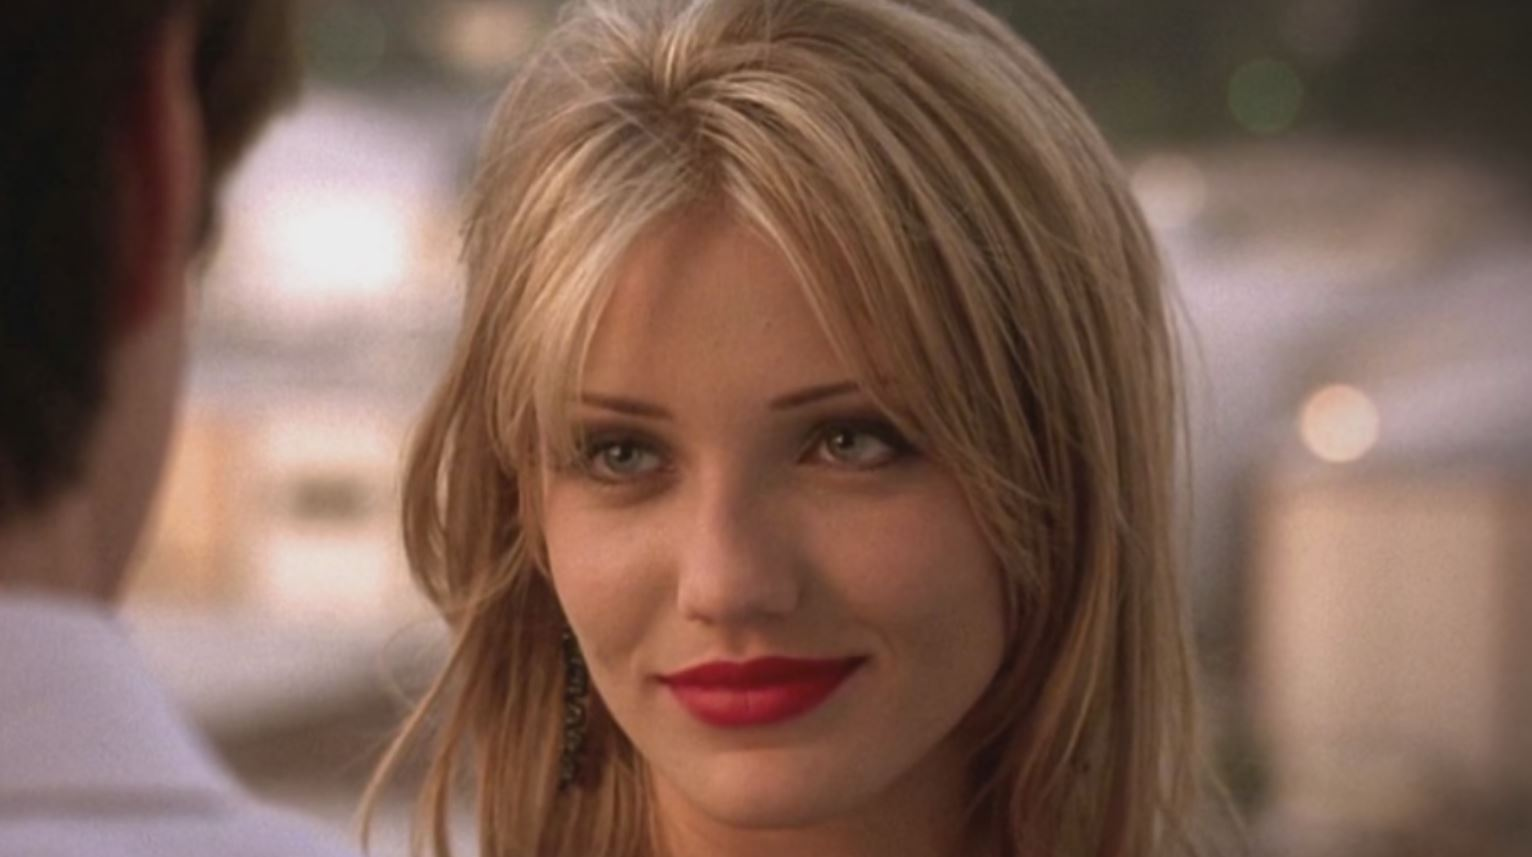 Cameron Diaz In Porn 5 celebrities who you didn't know started in porn :: fooyoh